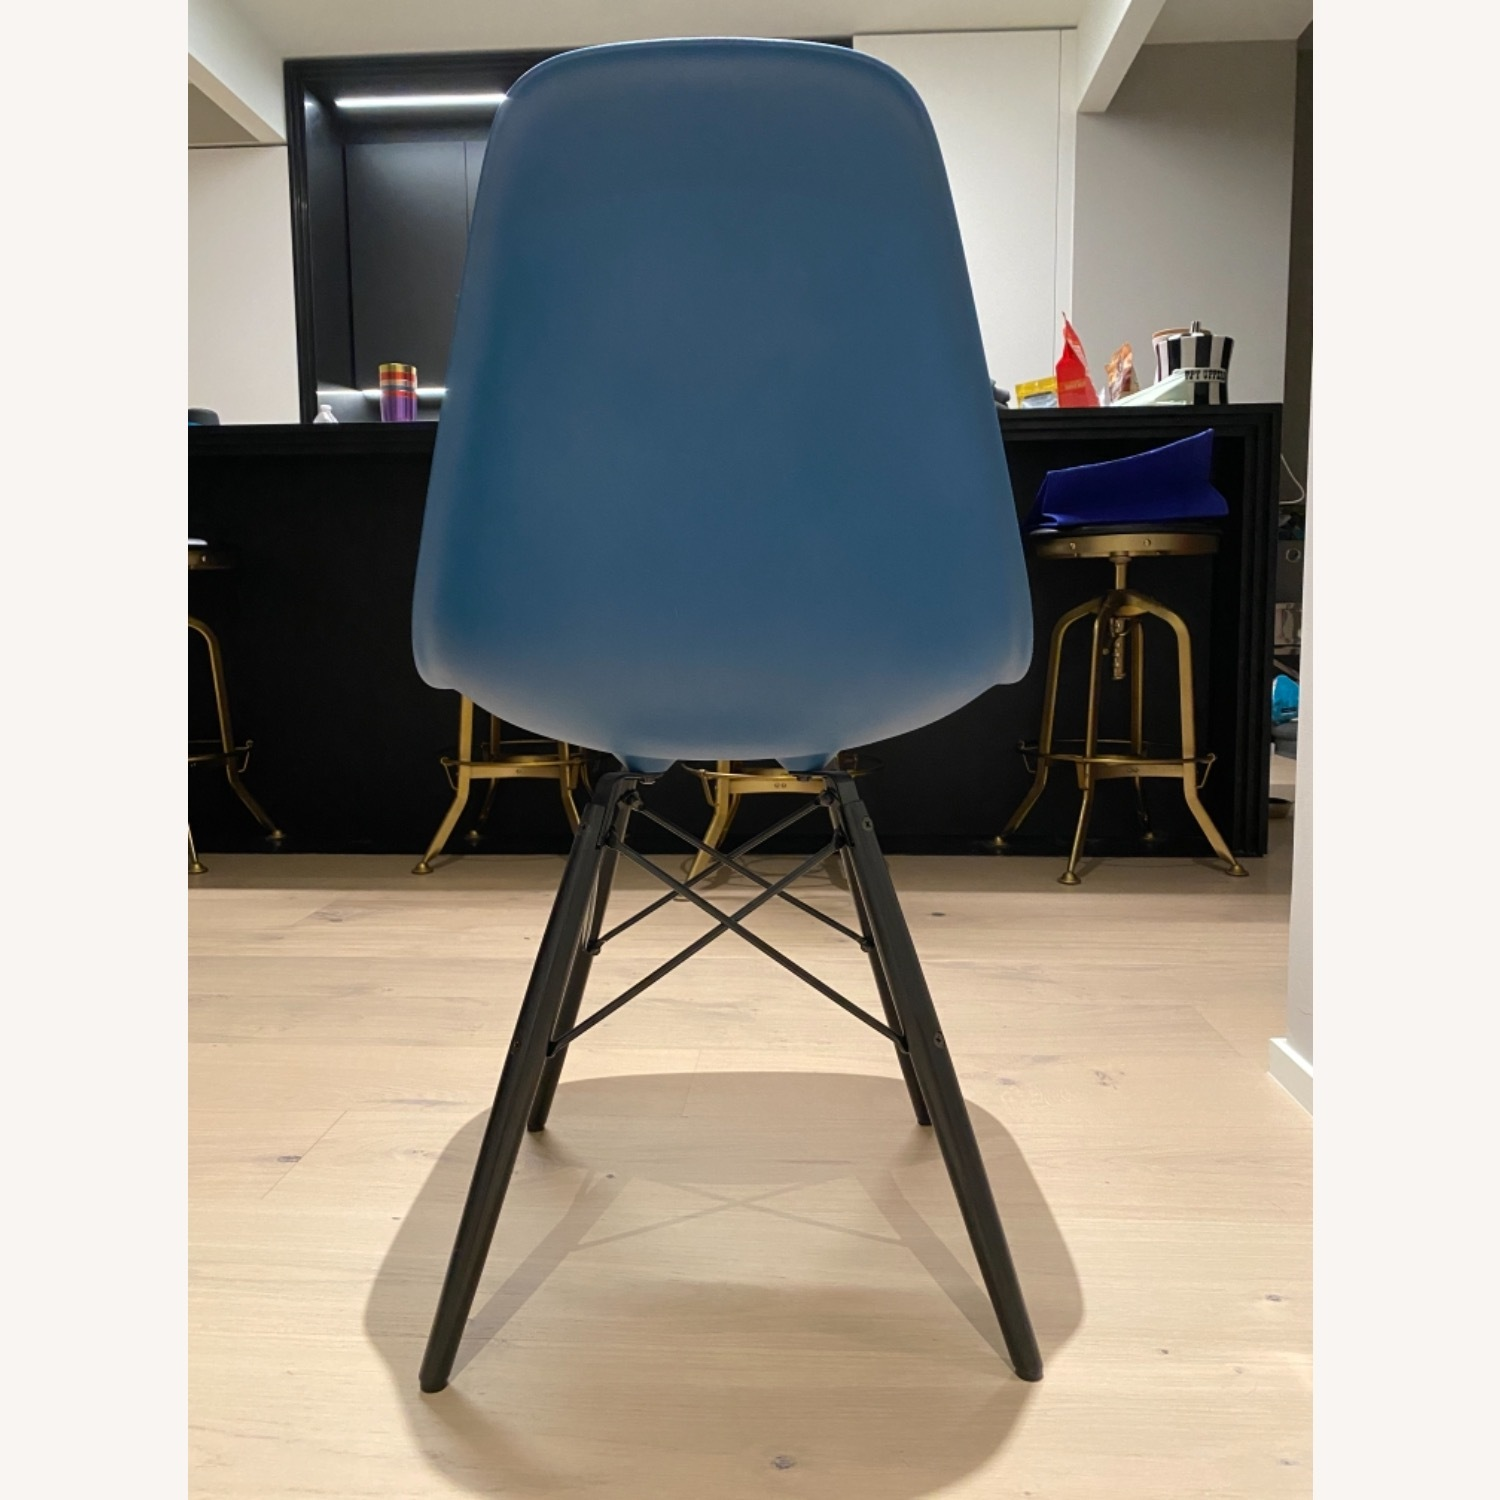 4 x Herman Miller Eames Molded Plastic Side Chair - image-4